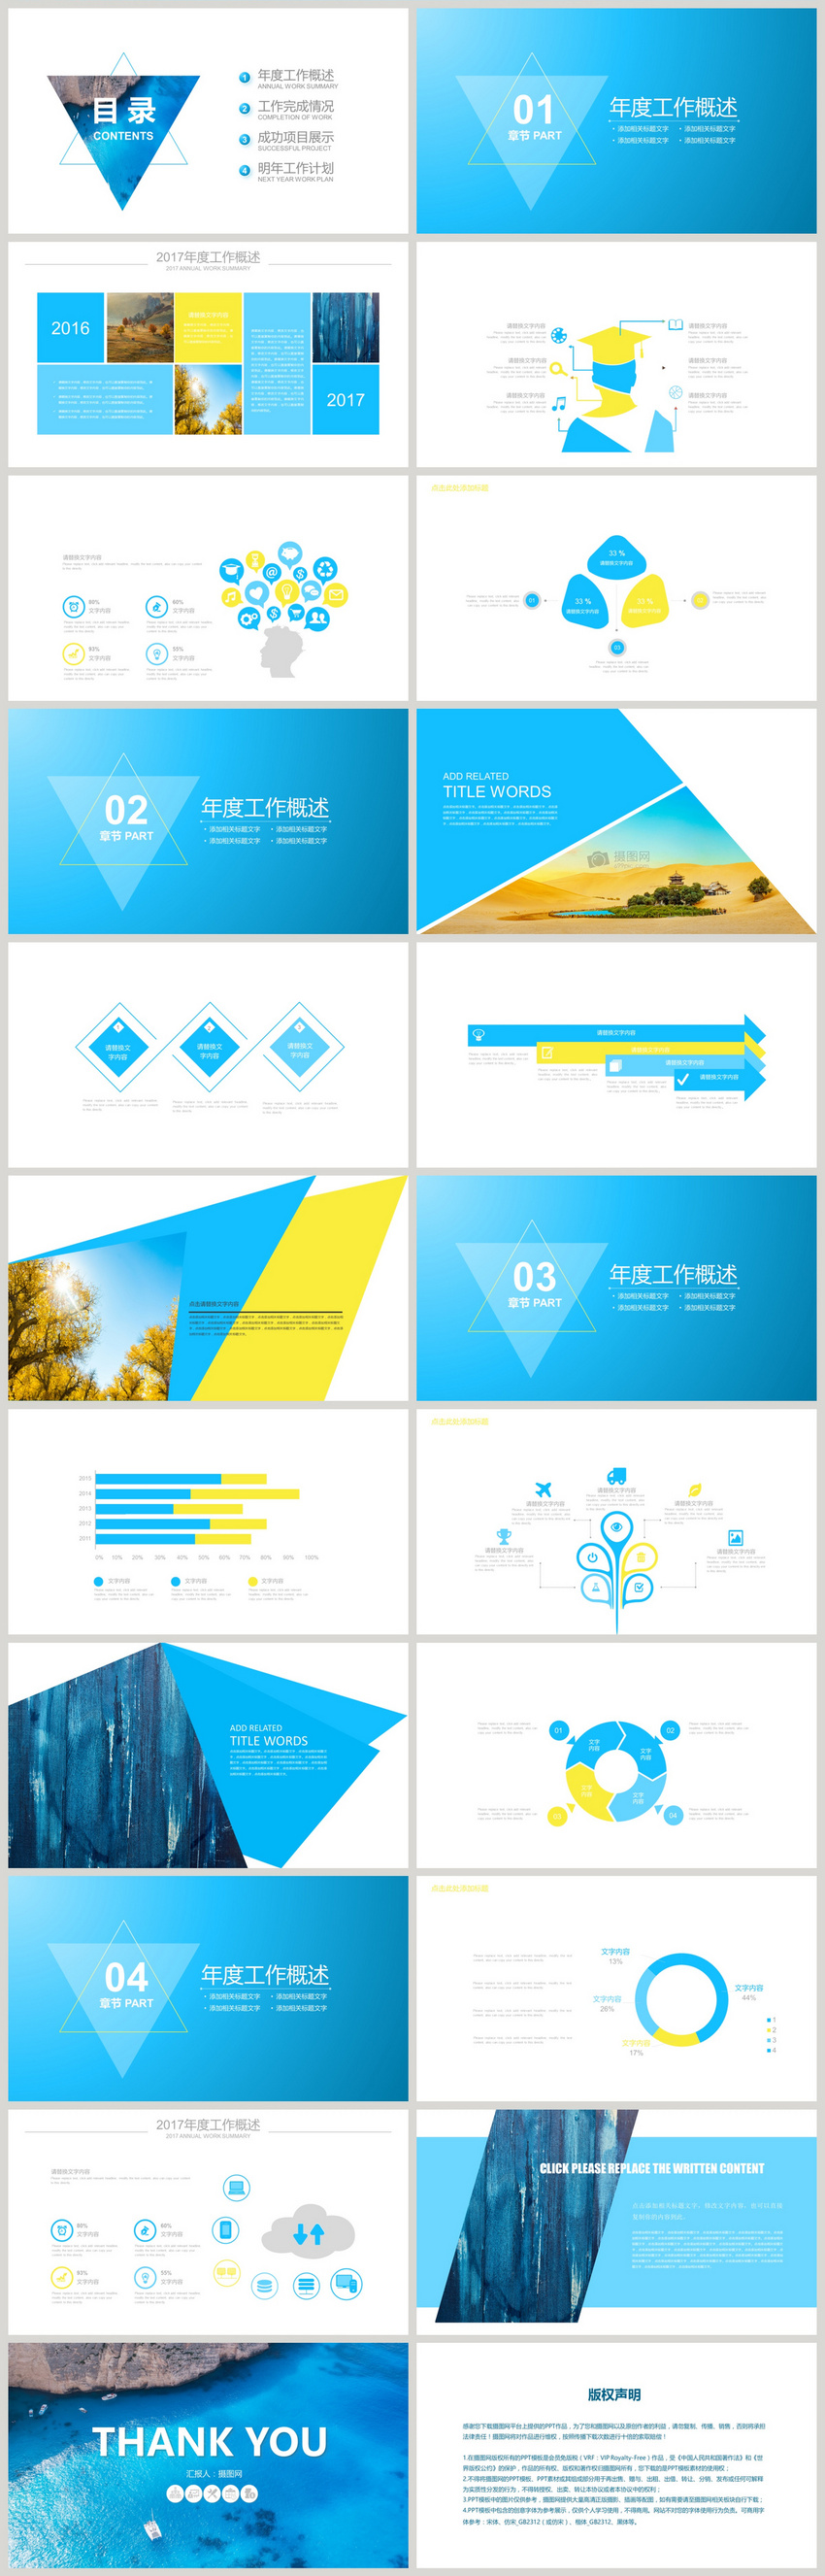 blue tourism planning and company introduction of ppt template